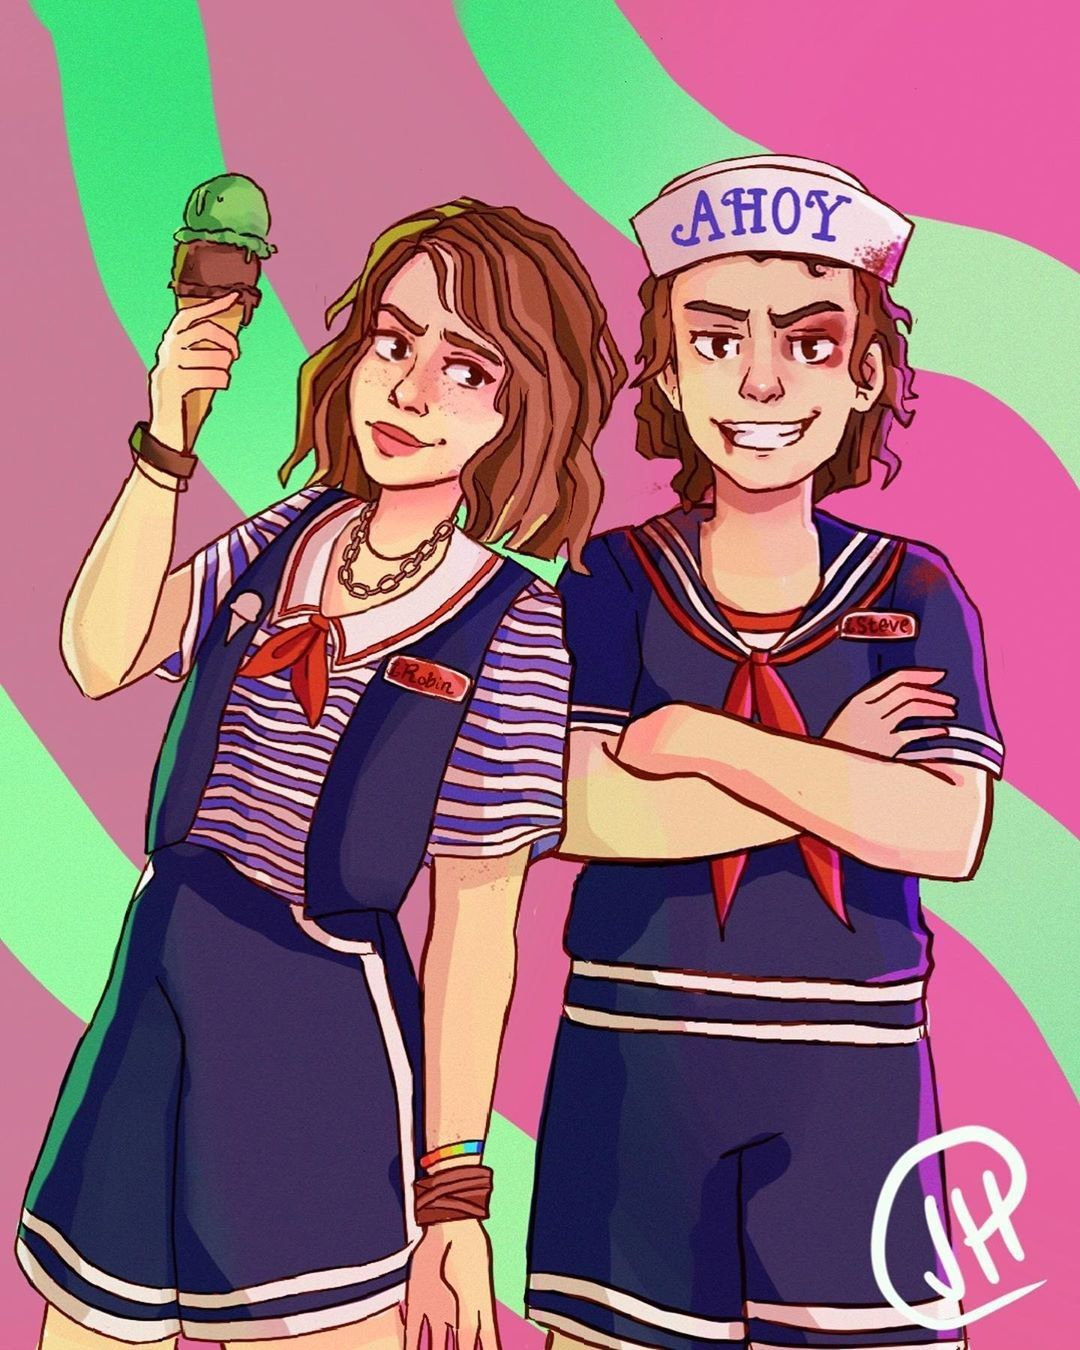 Stranger Things Scoops Ahoy Robin And Steve By Jess Jessie Tries Art Stranger Things Fanart Stranger Things Funny Stranger Things Art